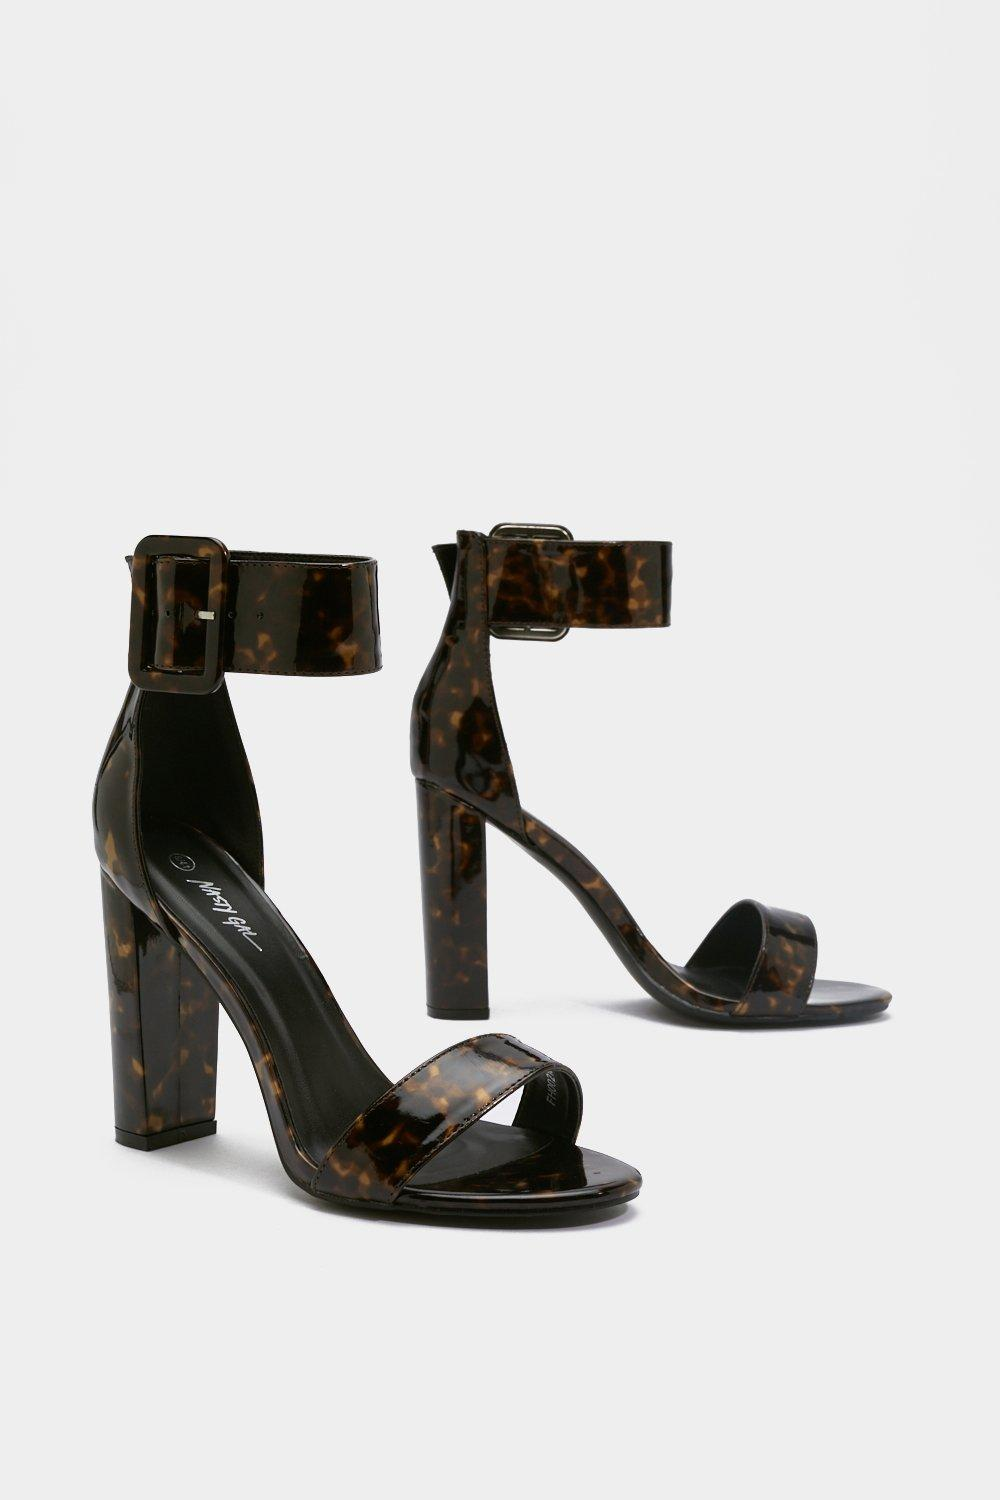 Tortoiseshell One Of Buckle Clothes Gal At Nasty Shell HeelsShop A Time VGpSMqUz